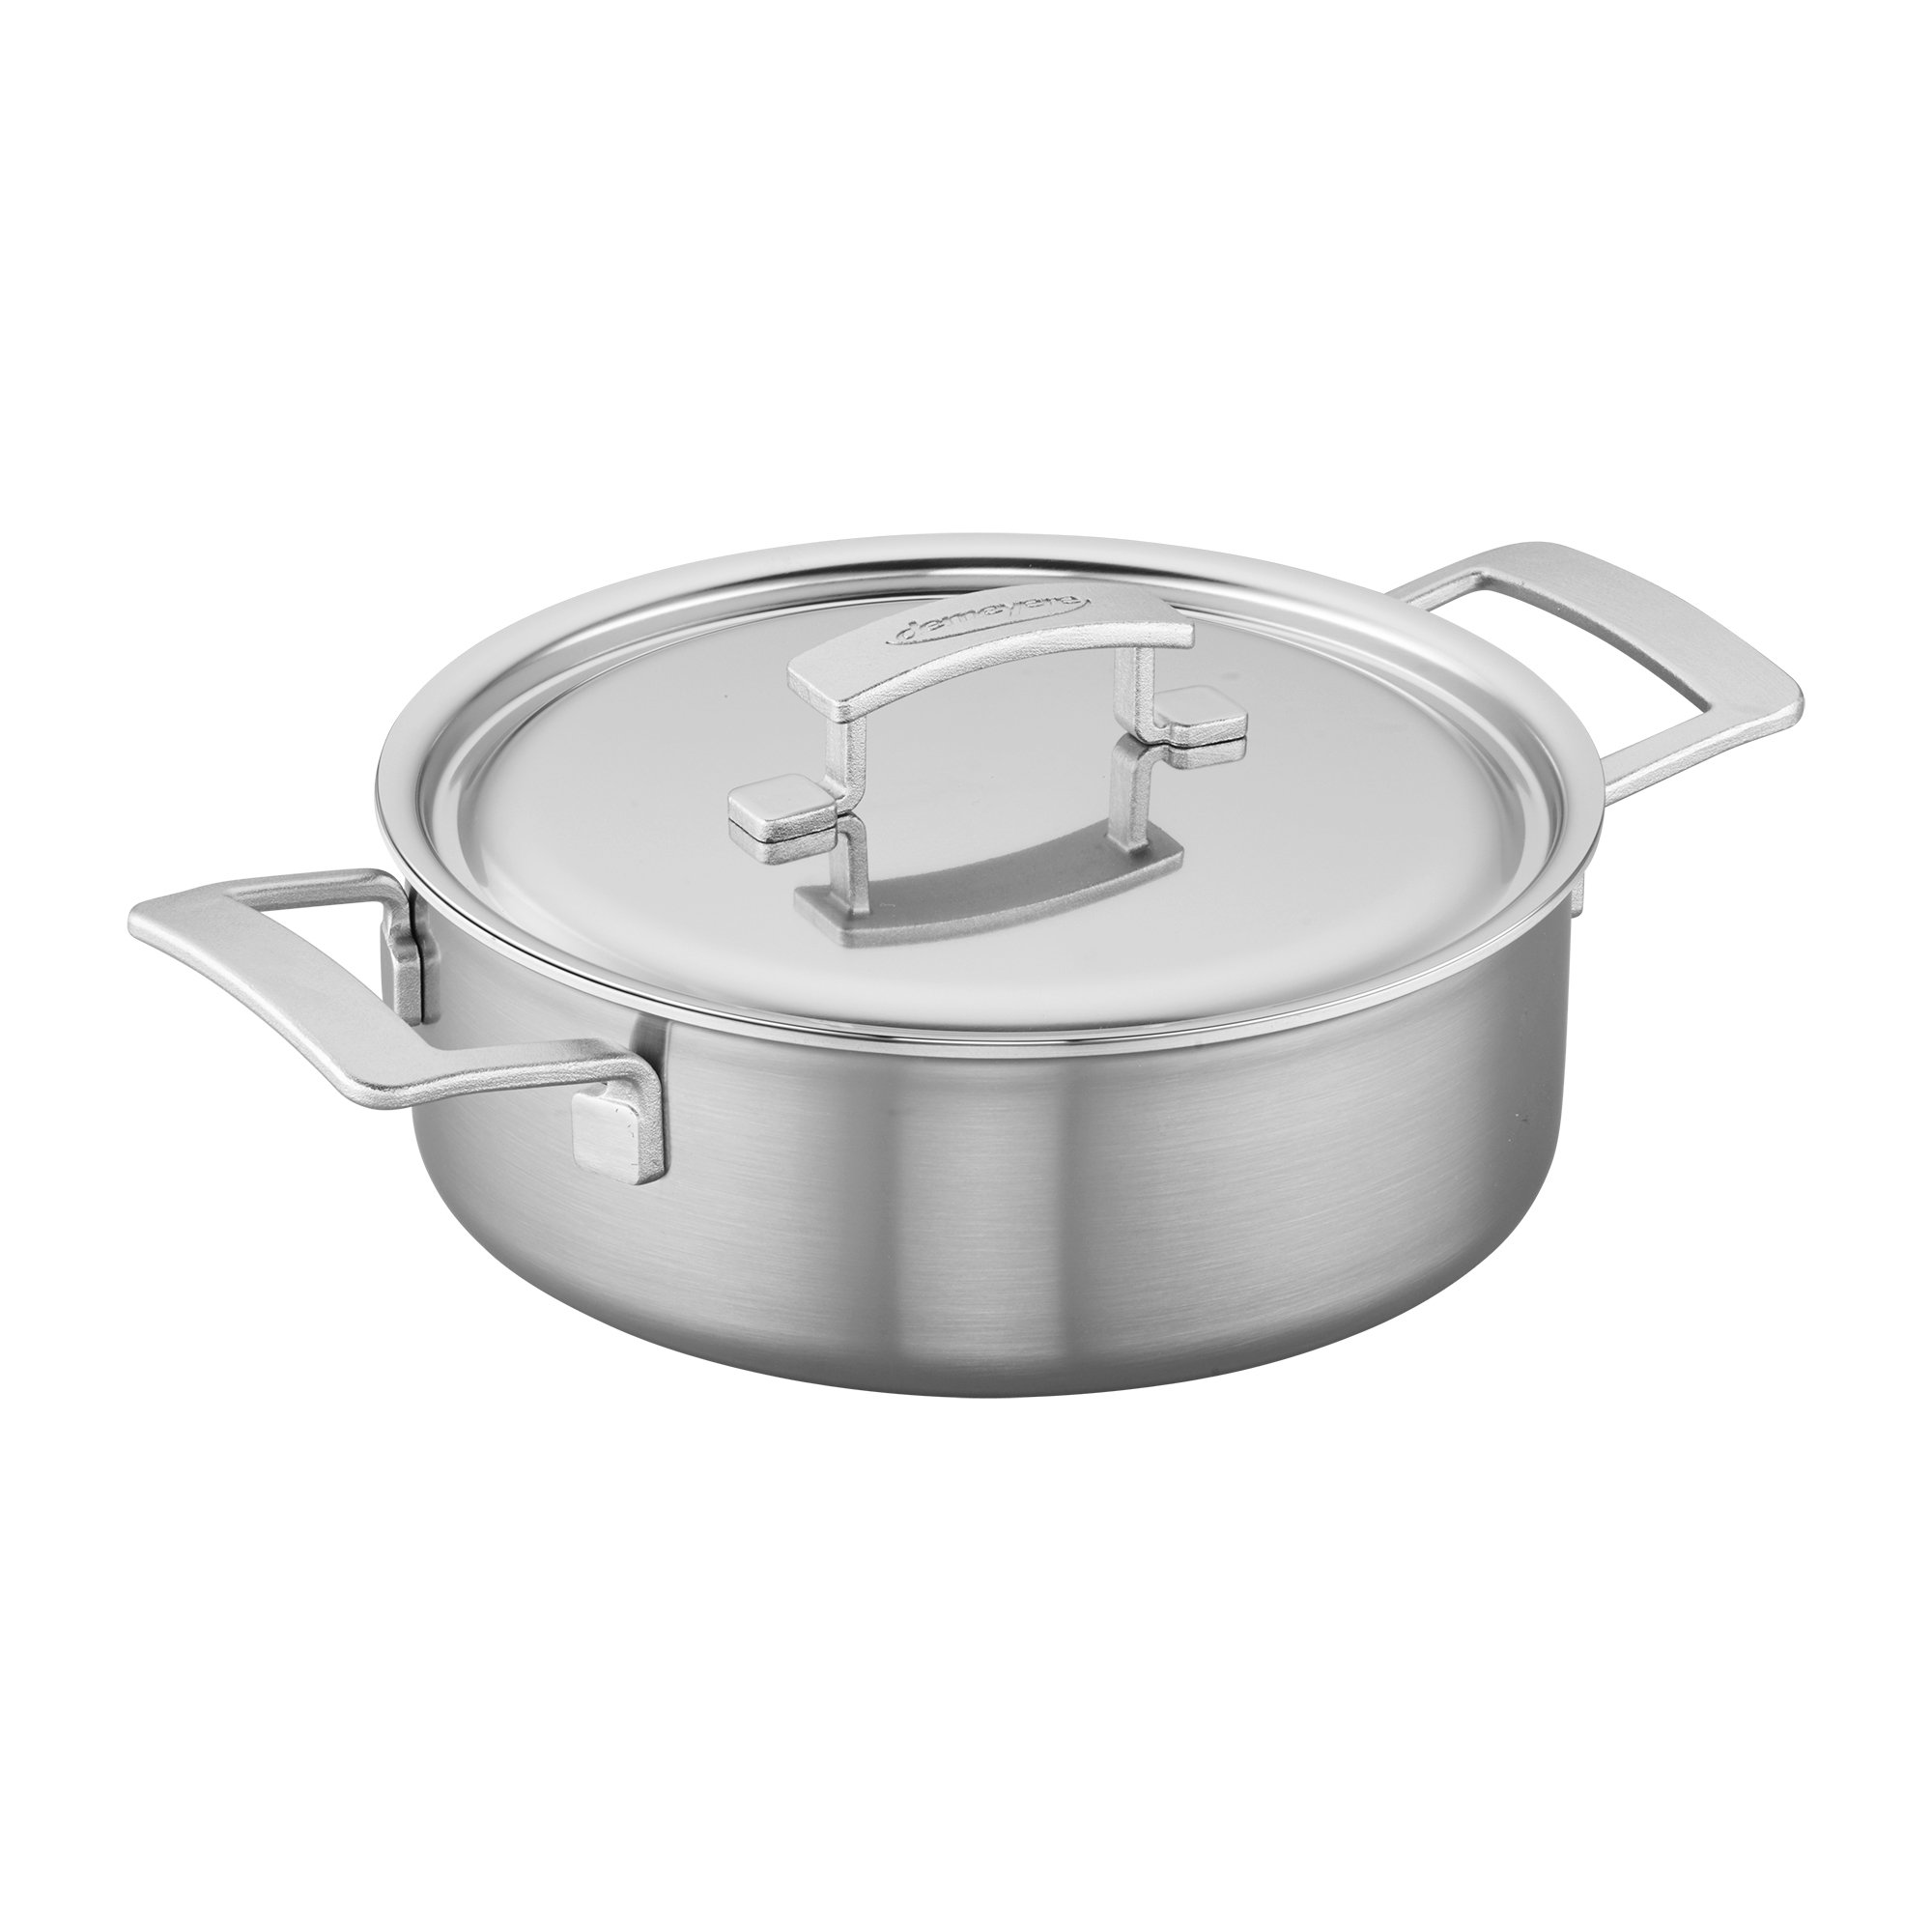 Demeyere NN Industry 5-Ply 4-qt Stainless Steel Deep Saute Pan, Silver